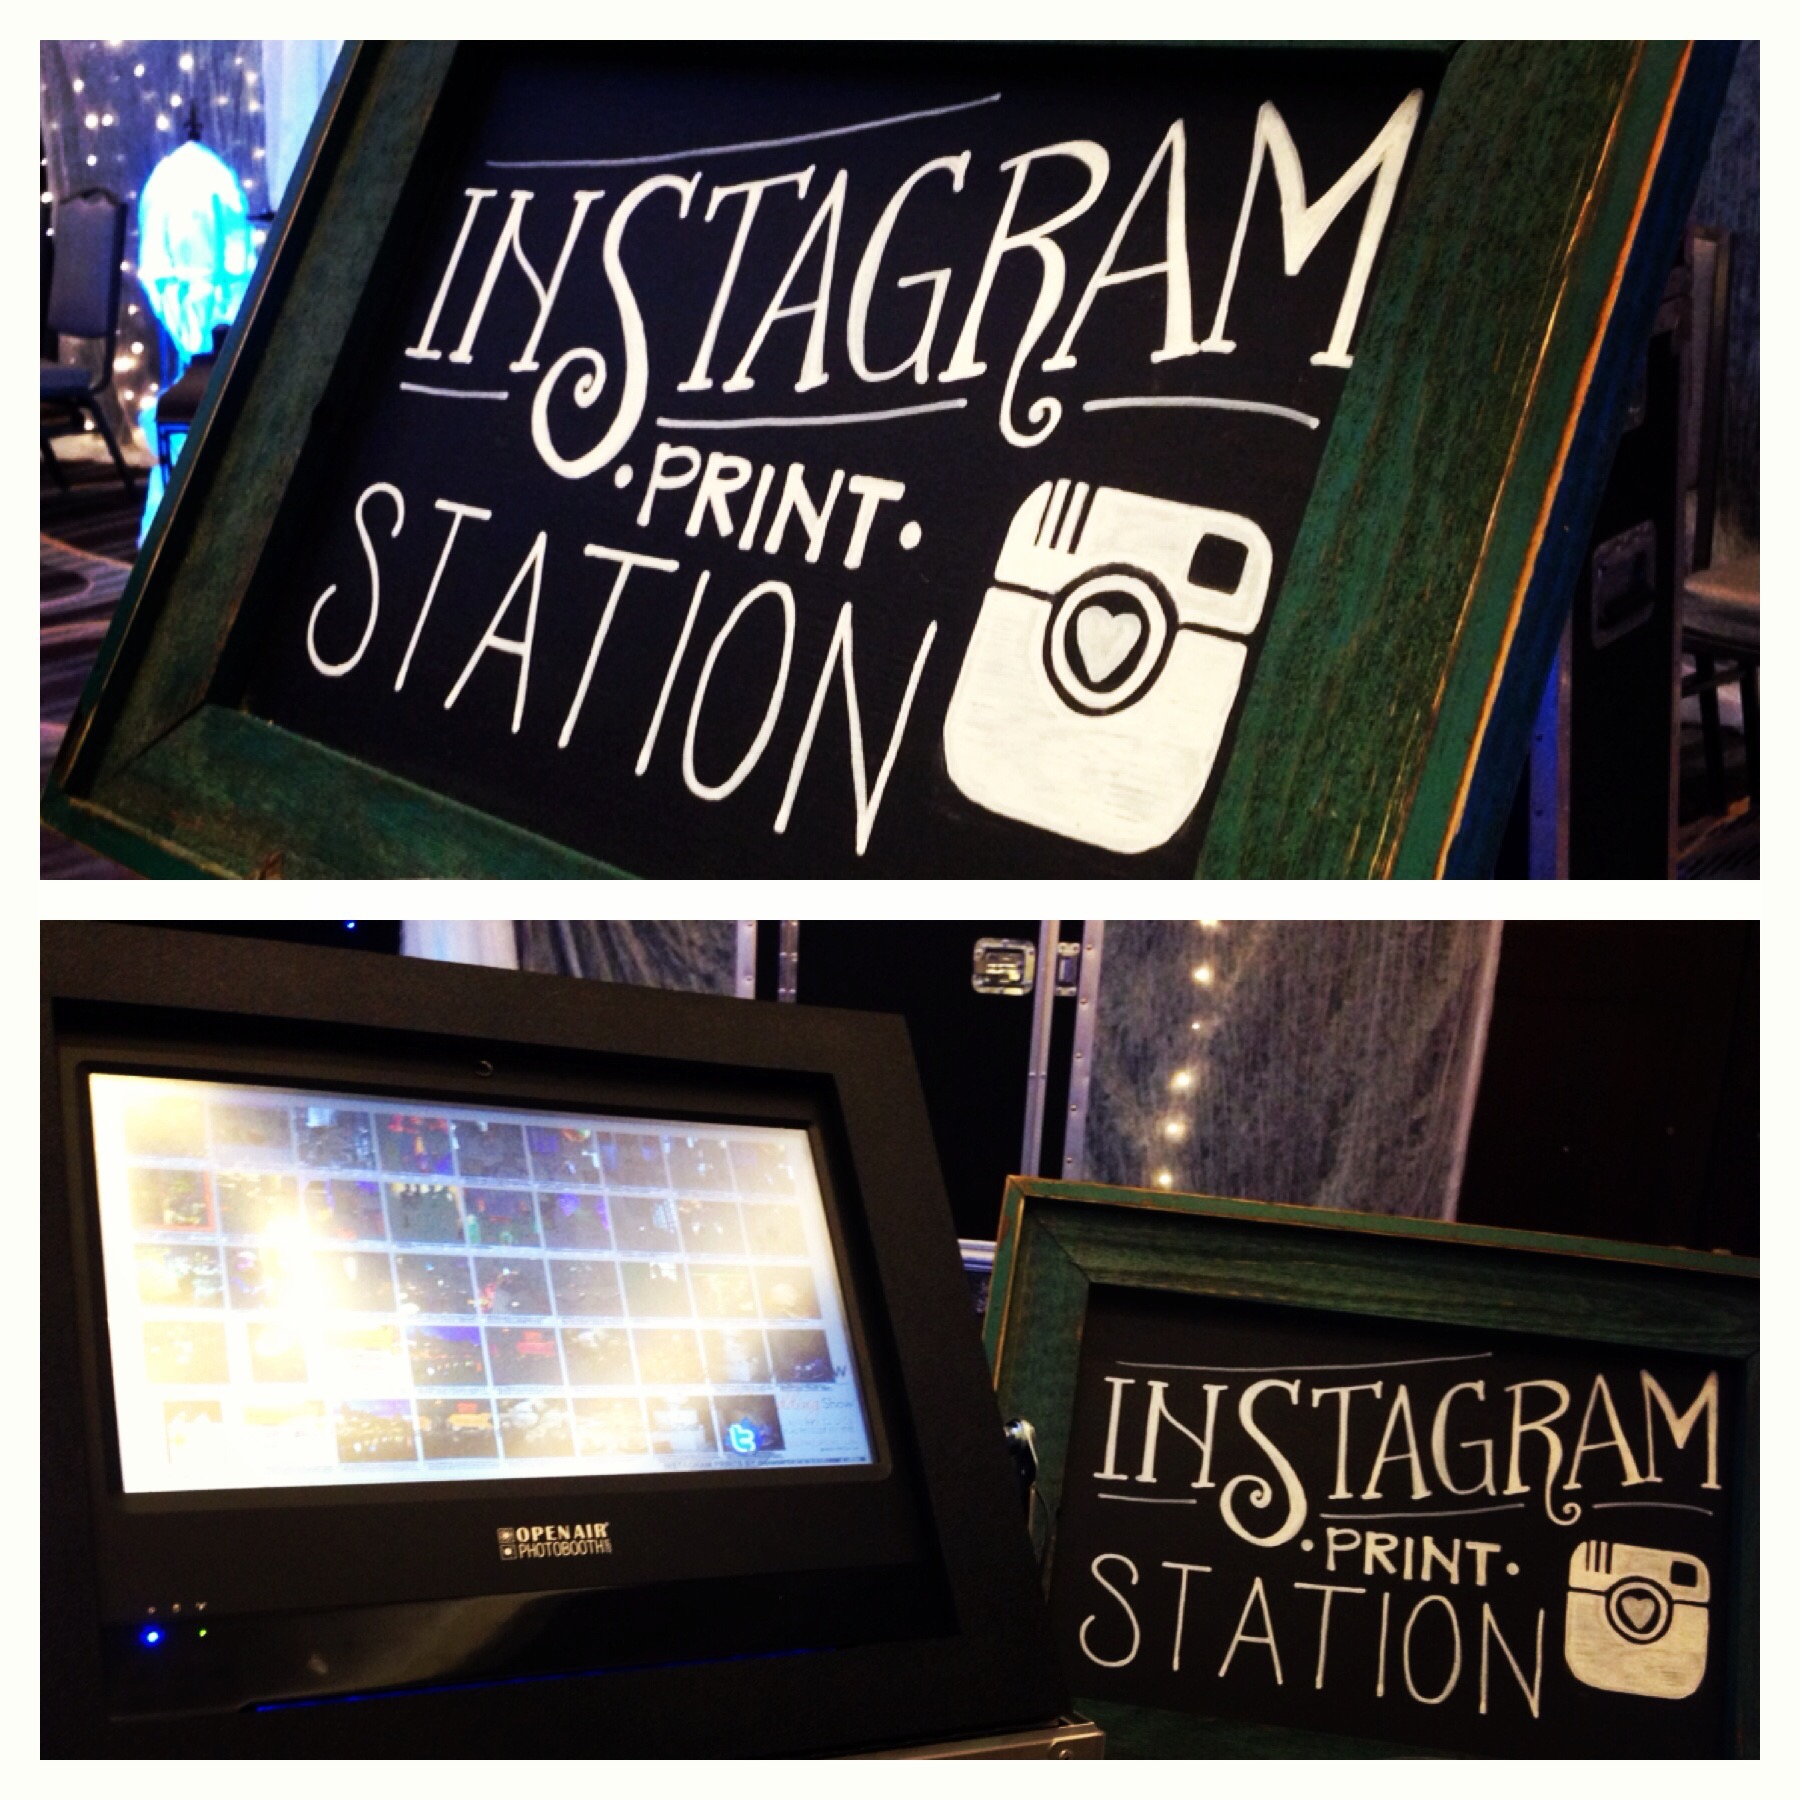 Snyder Entertainment's Instagram Station